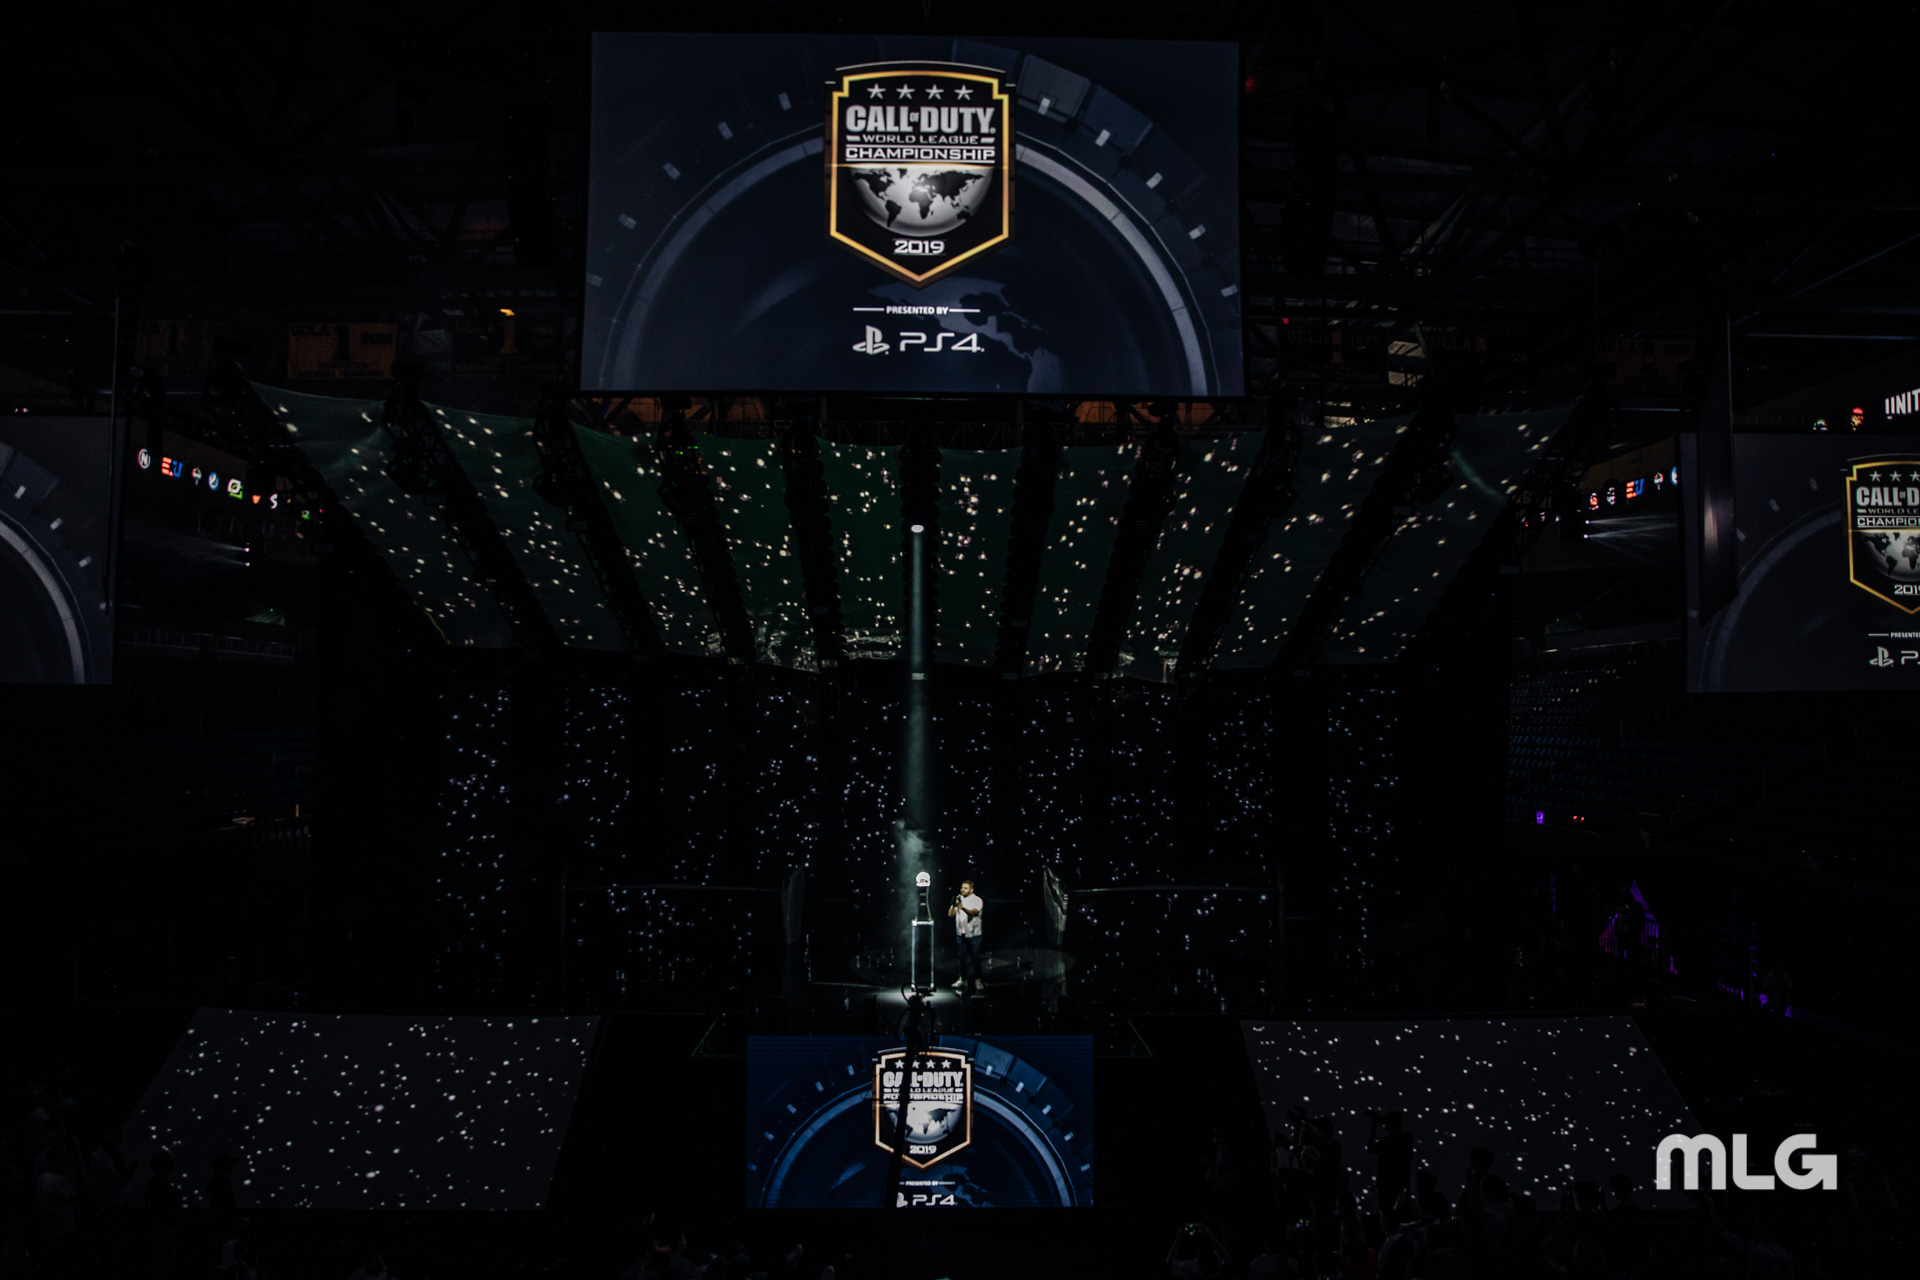 Here's the schedule for the 2020 Call of Duty League season